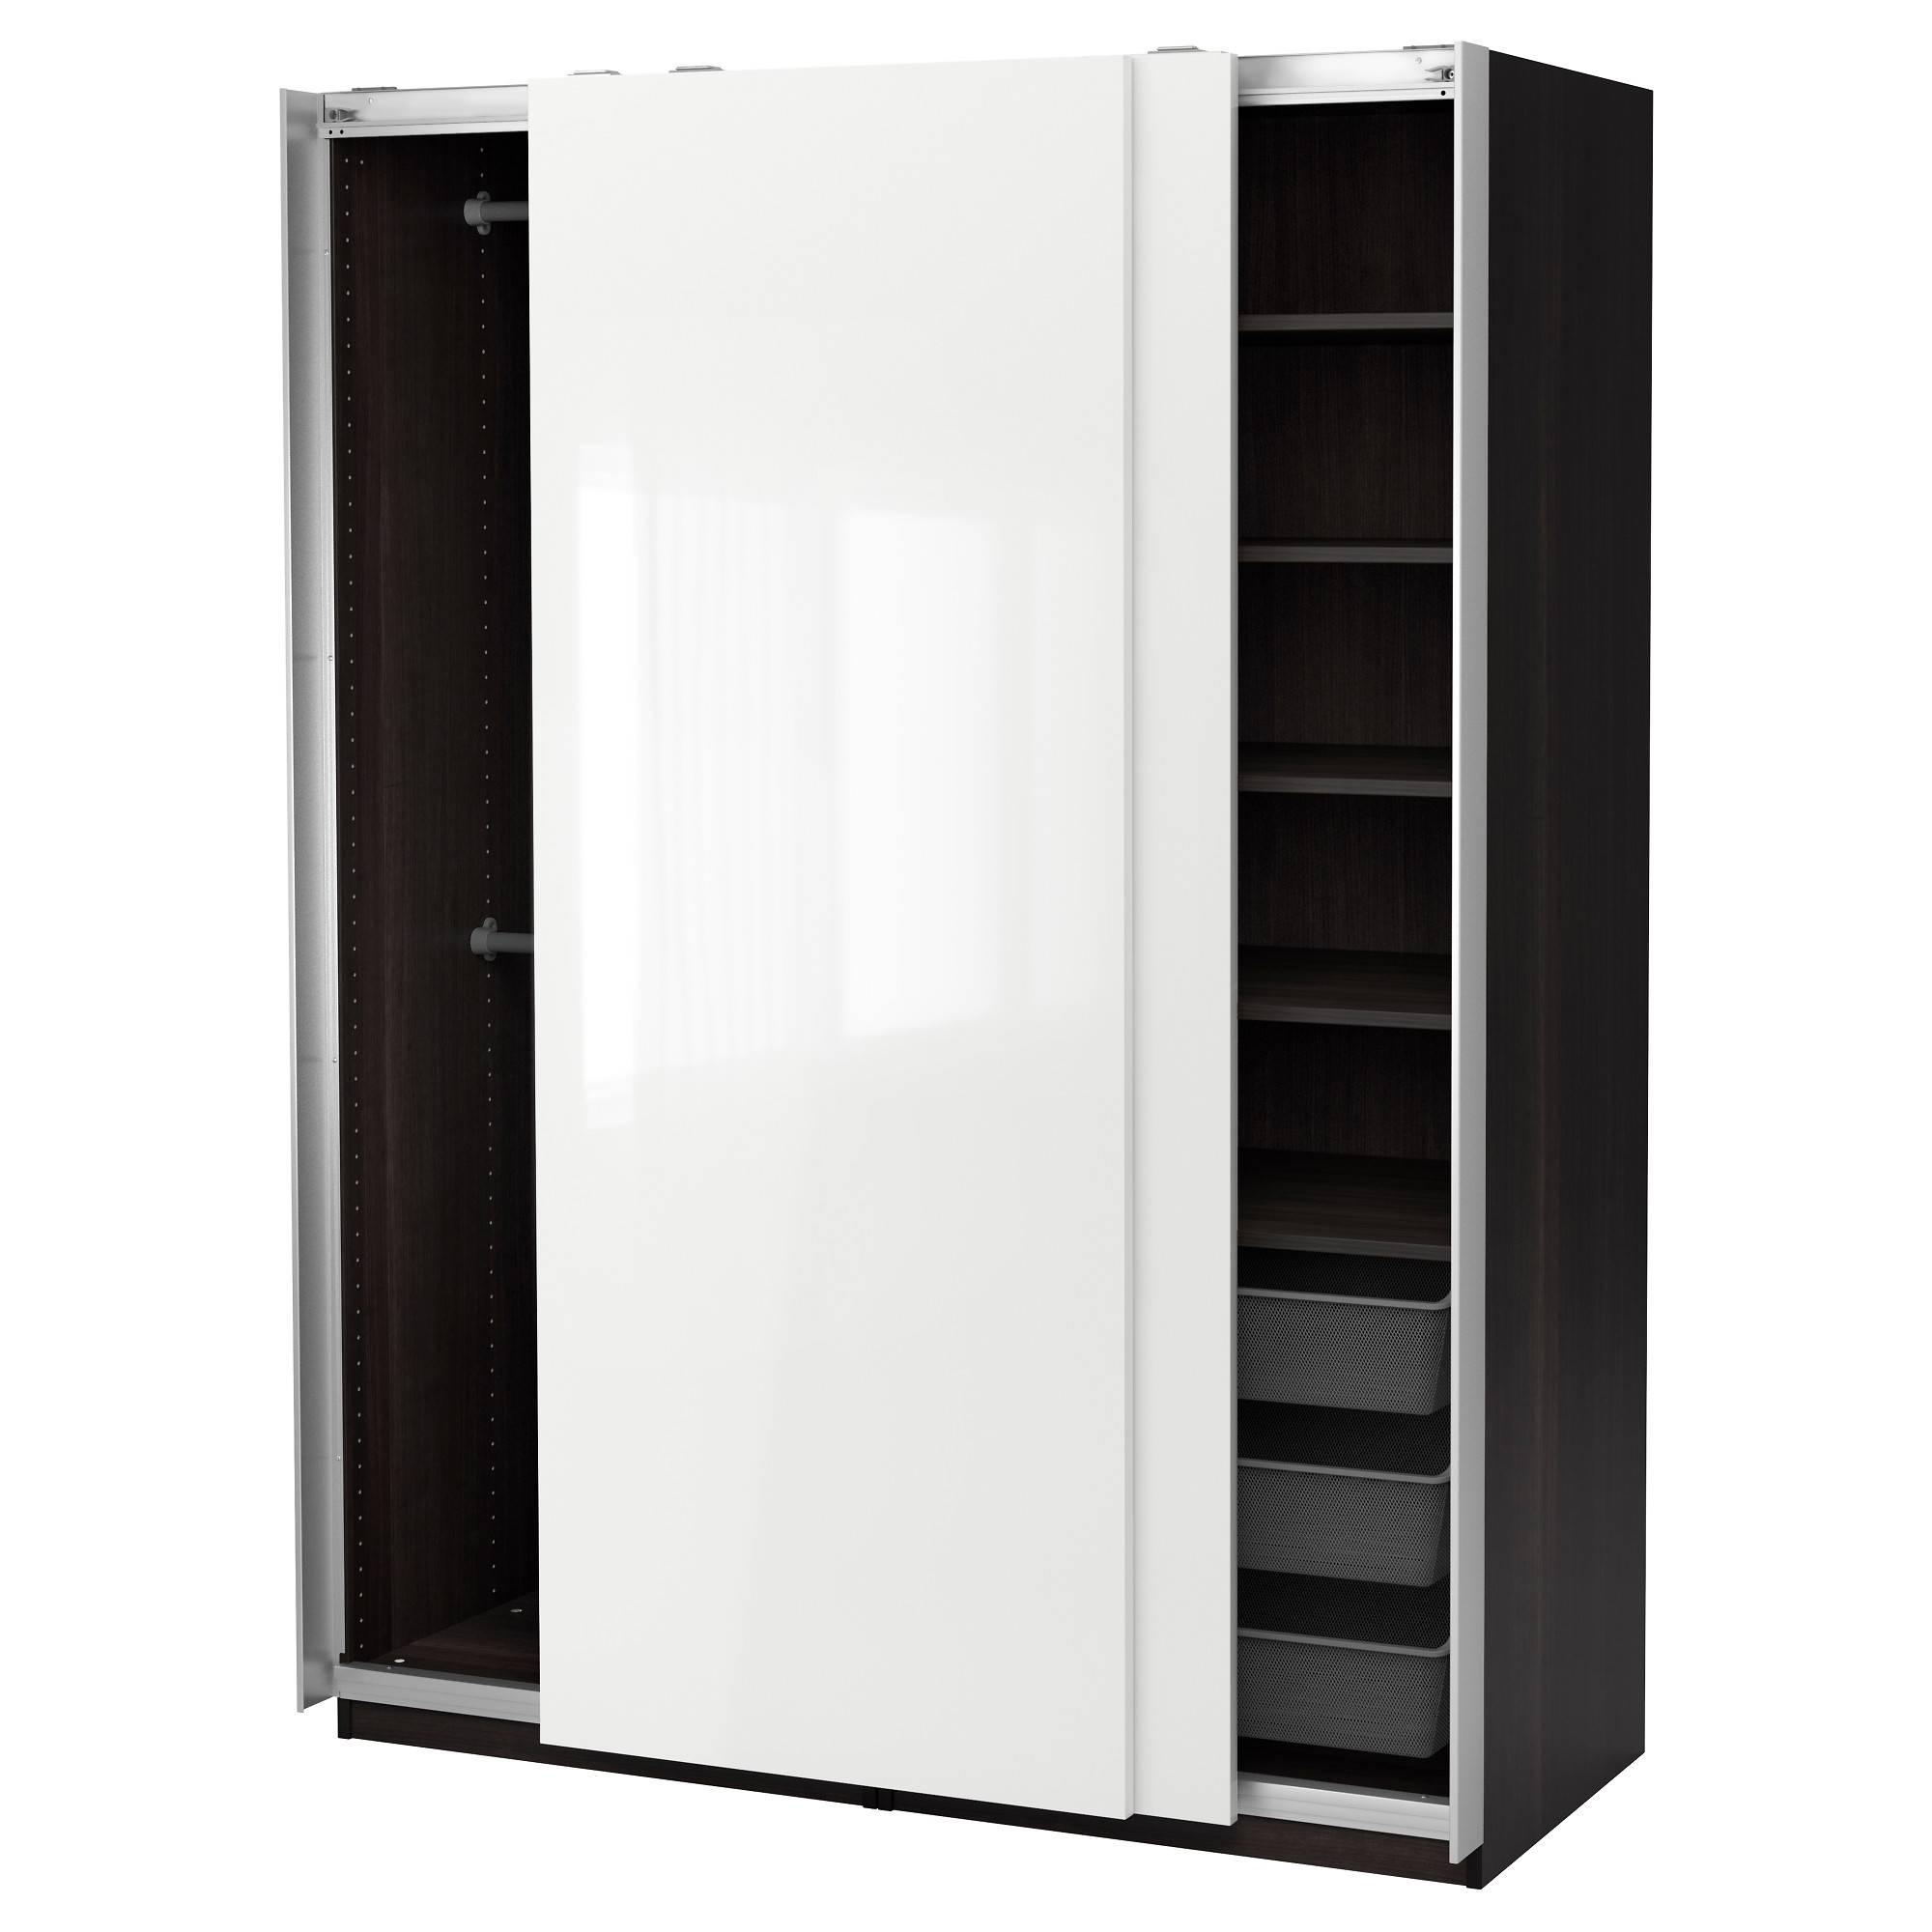 Pax Wardrobe Black-Brown/hasvik High-Gloss/white 150X66X201 Cm - Ikea with Glossy Wardrobes (Image 7 of 15)